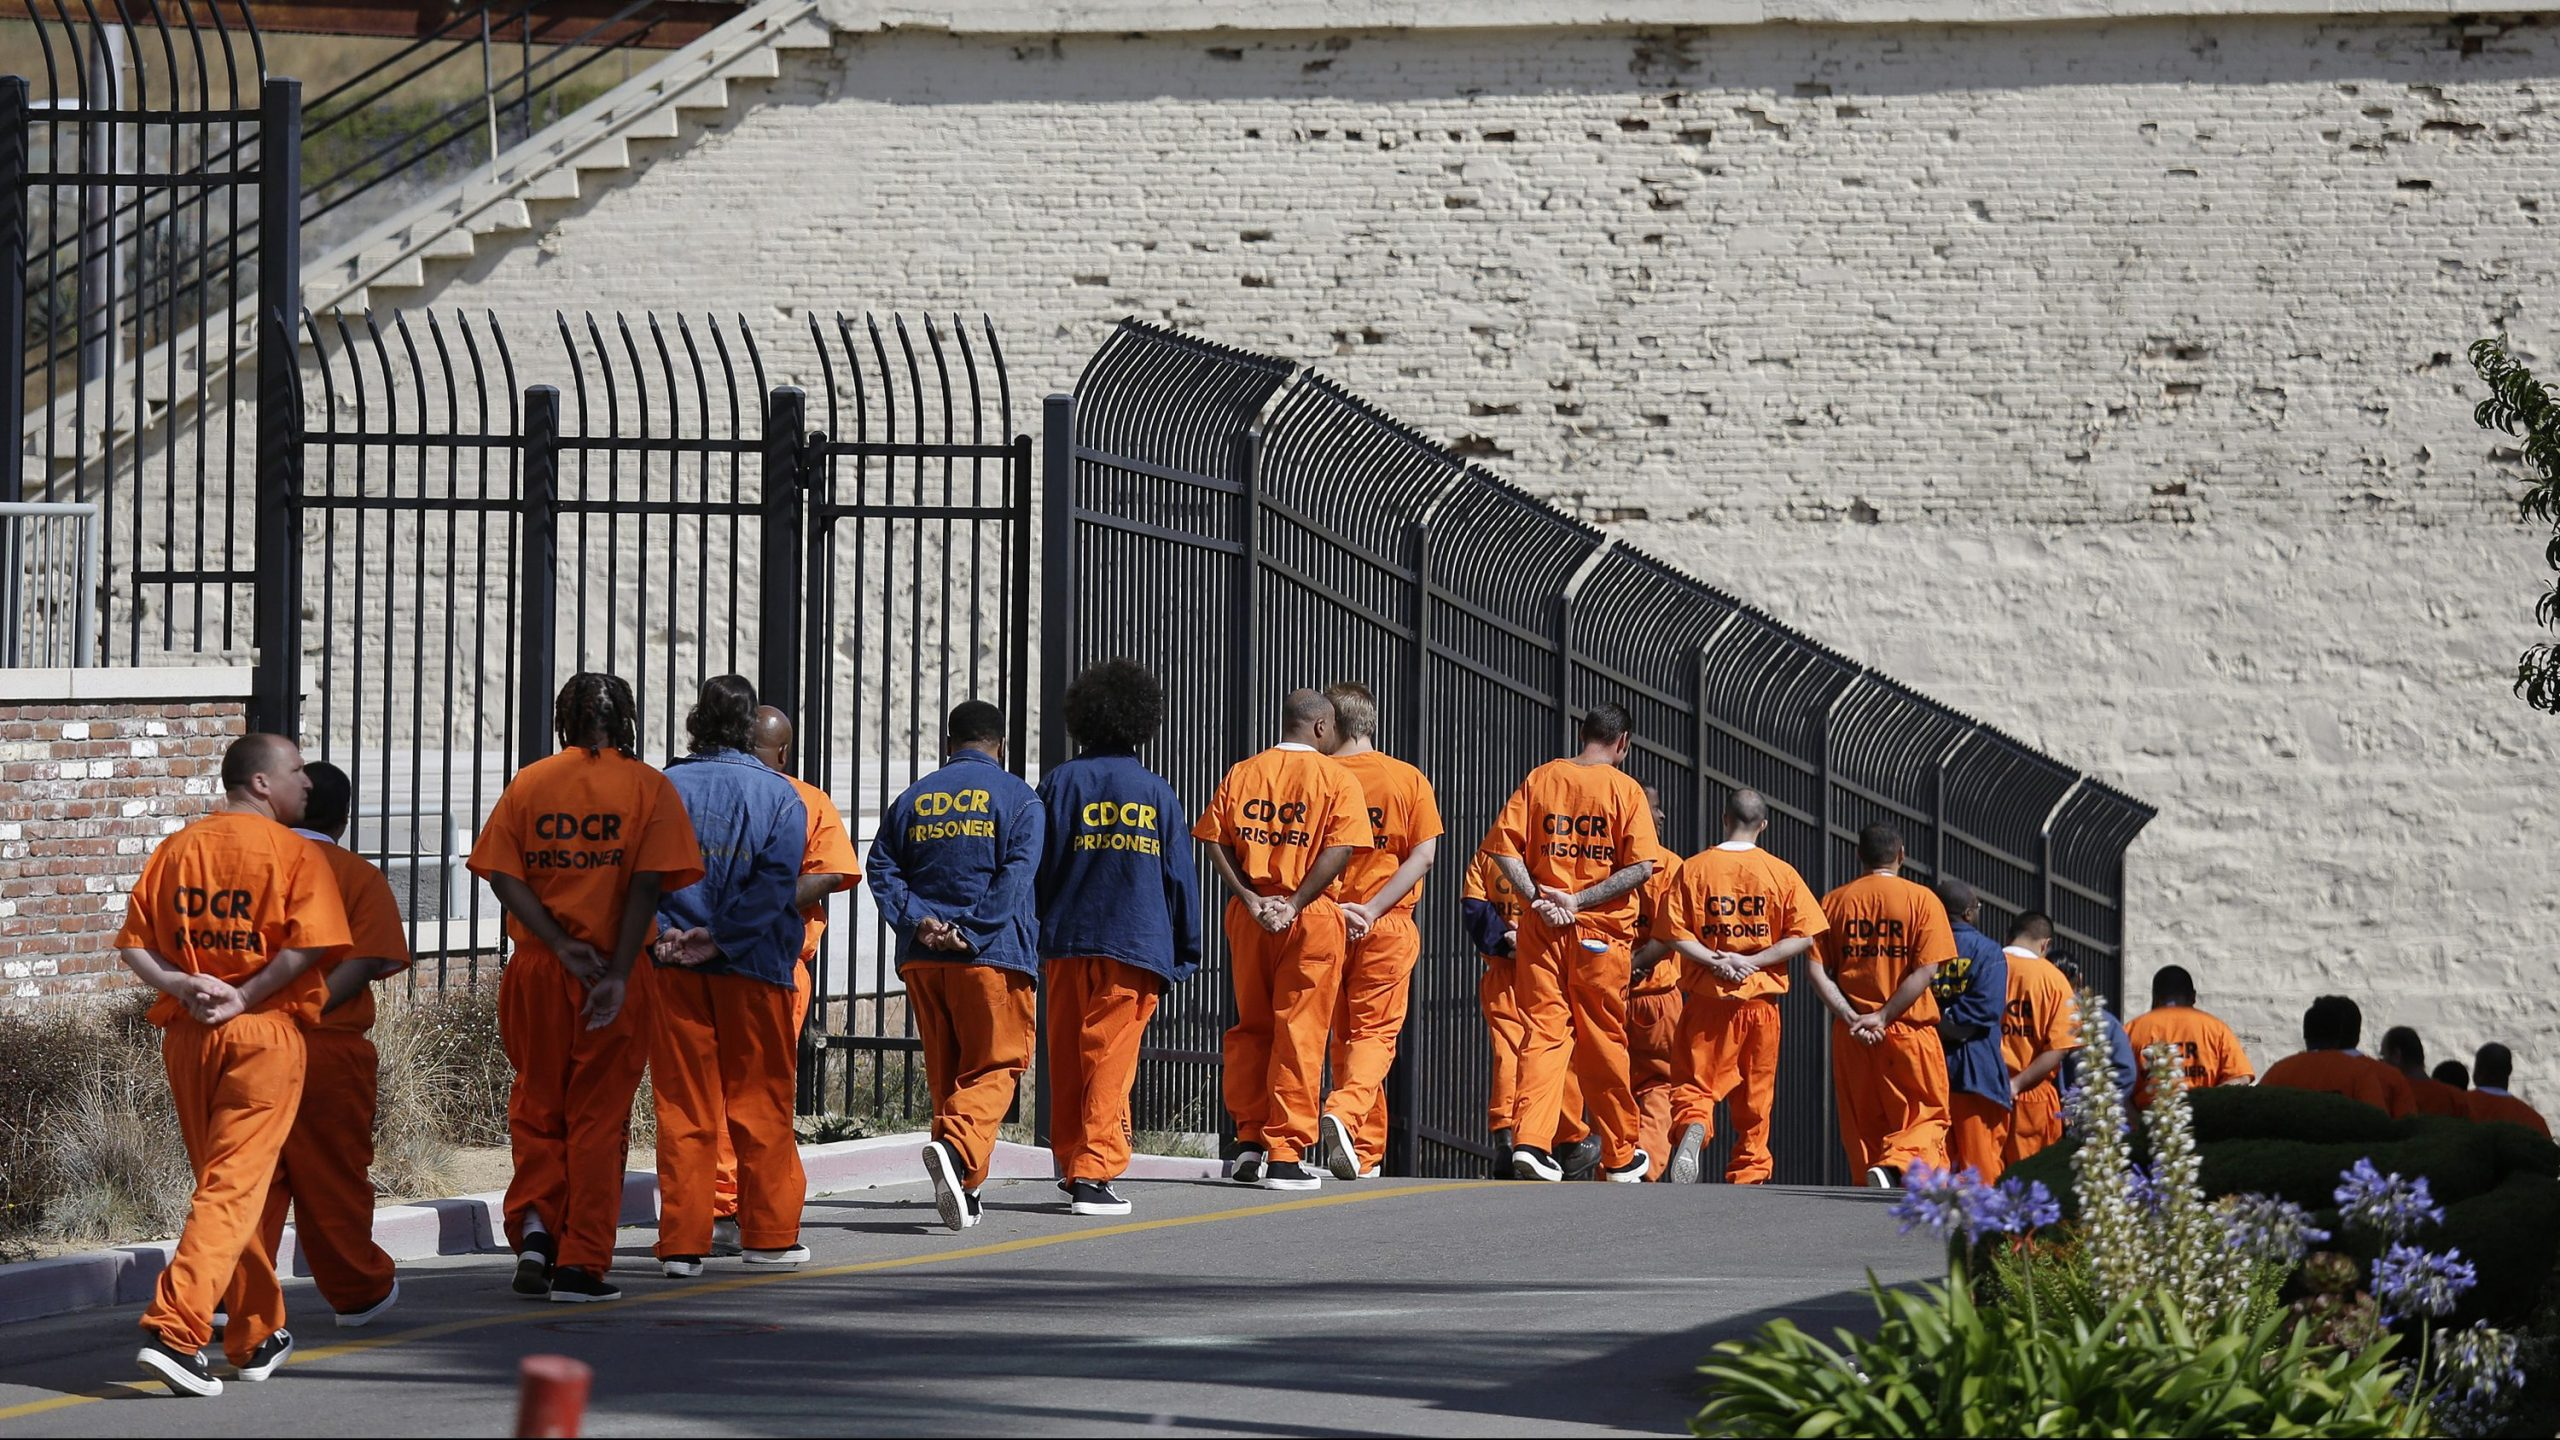 General population inmates walk in a line at San Quentin State Prison in San Quentin on Aug. 16, 2016. (Eric Risberg / Associated Press)